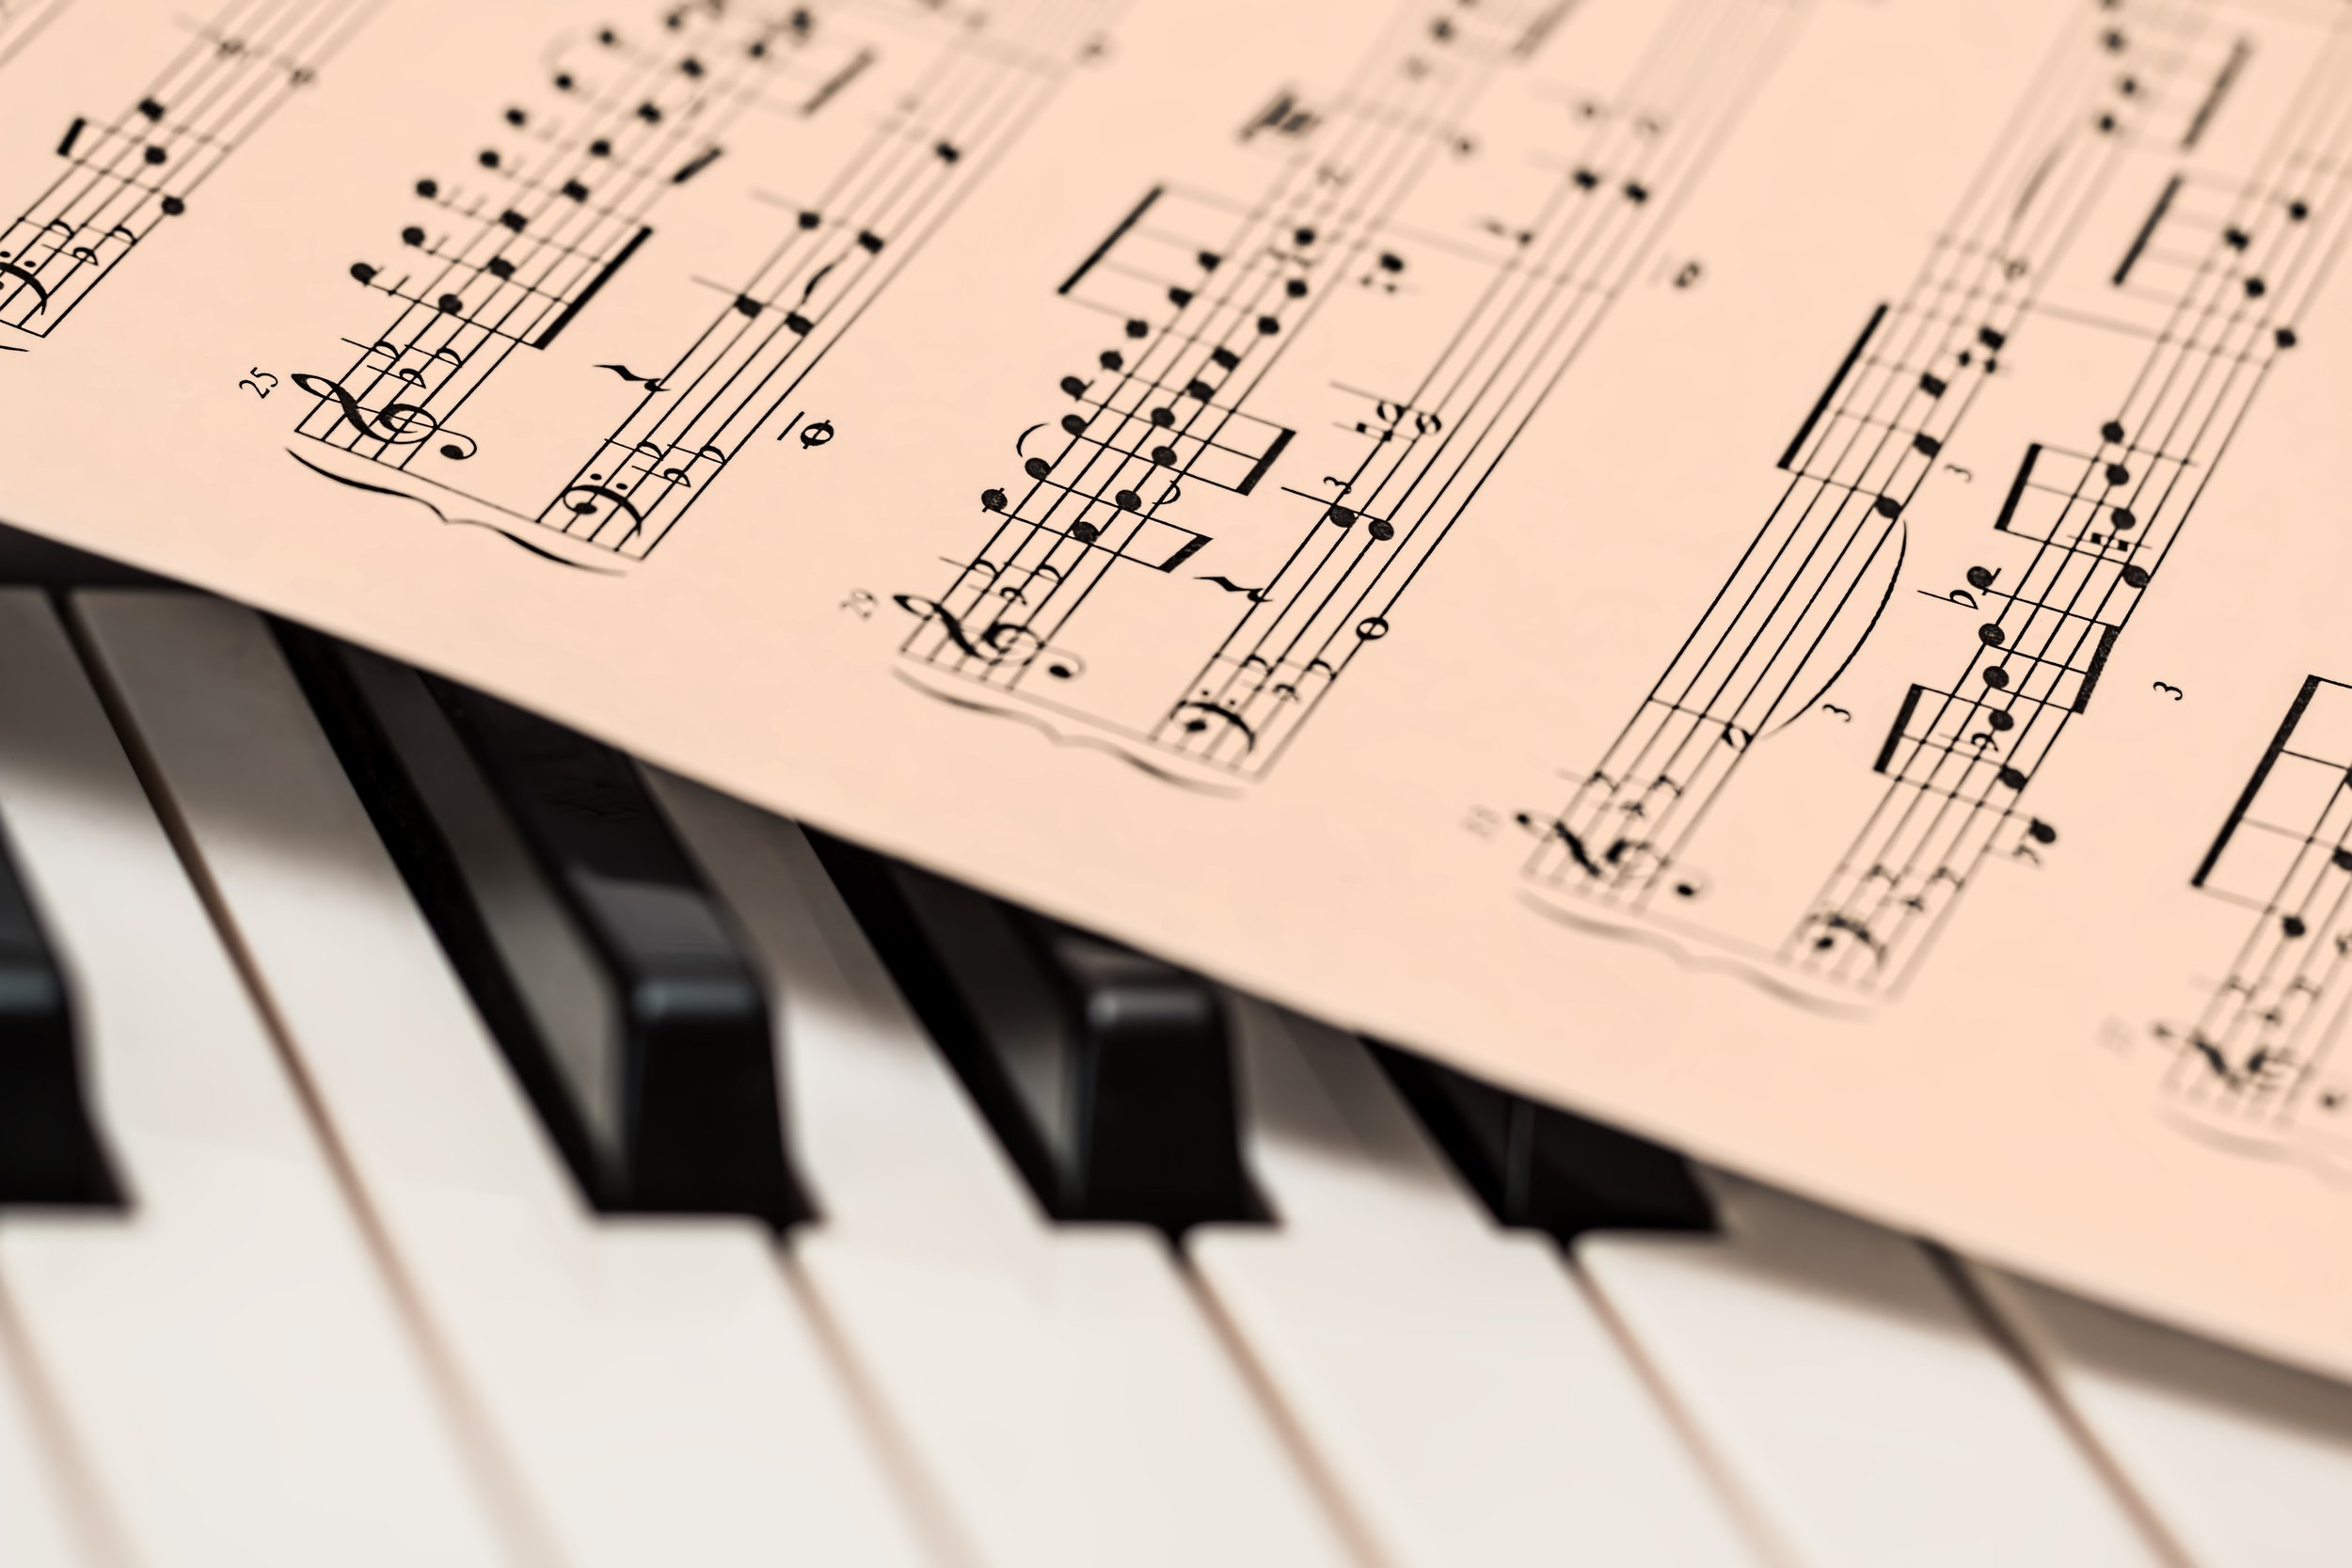 keyboard-music-sheet-musical-instrument-210764.jpg